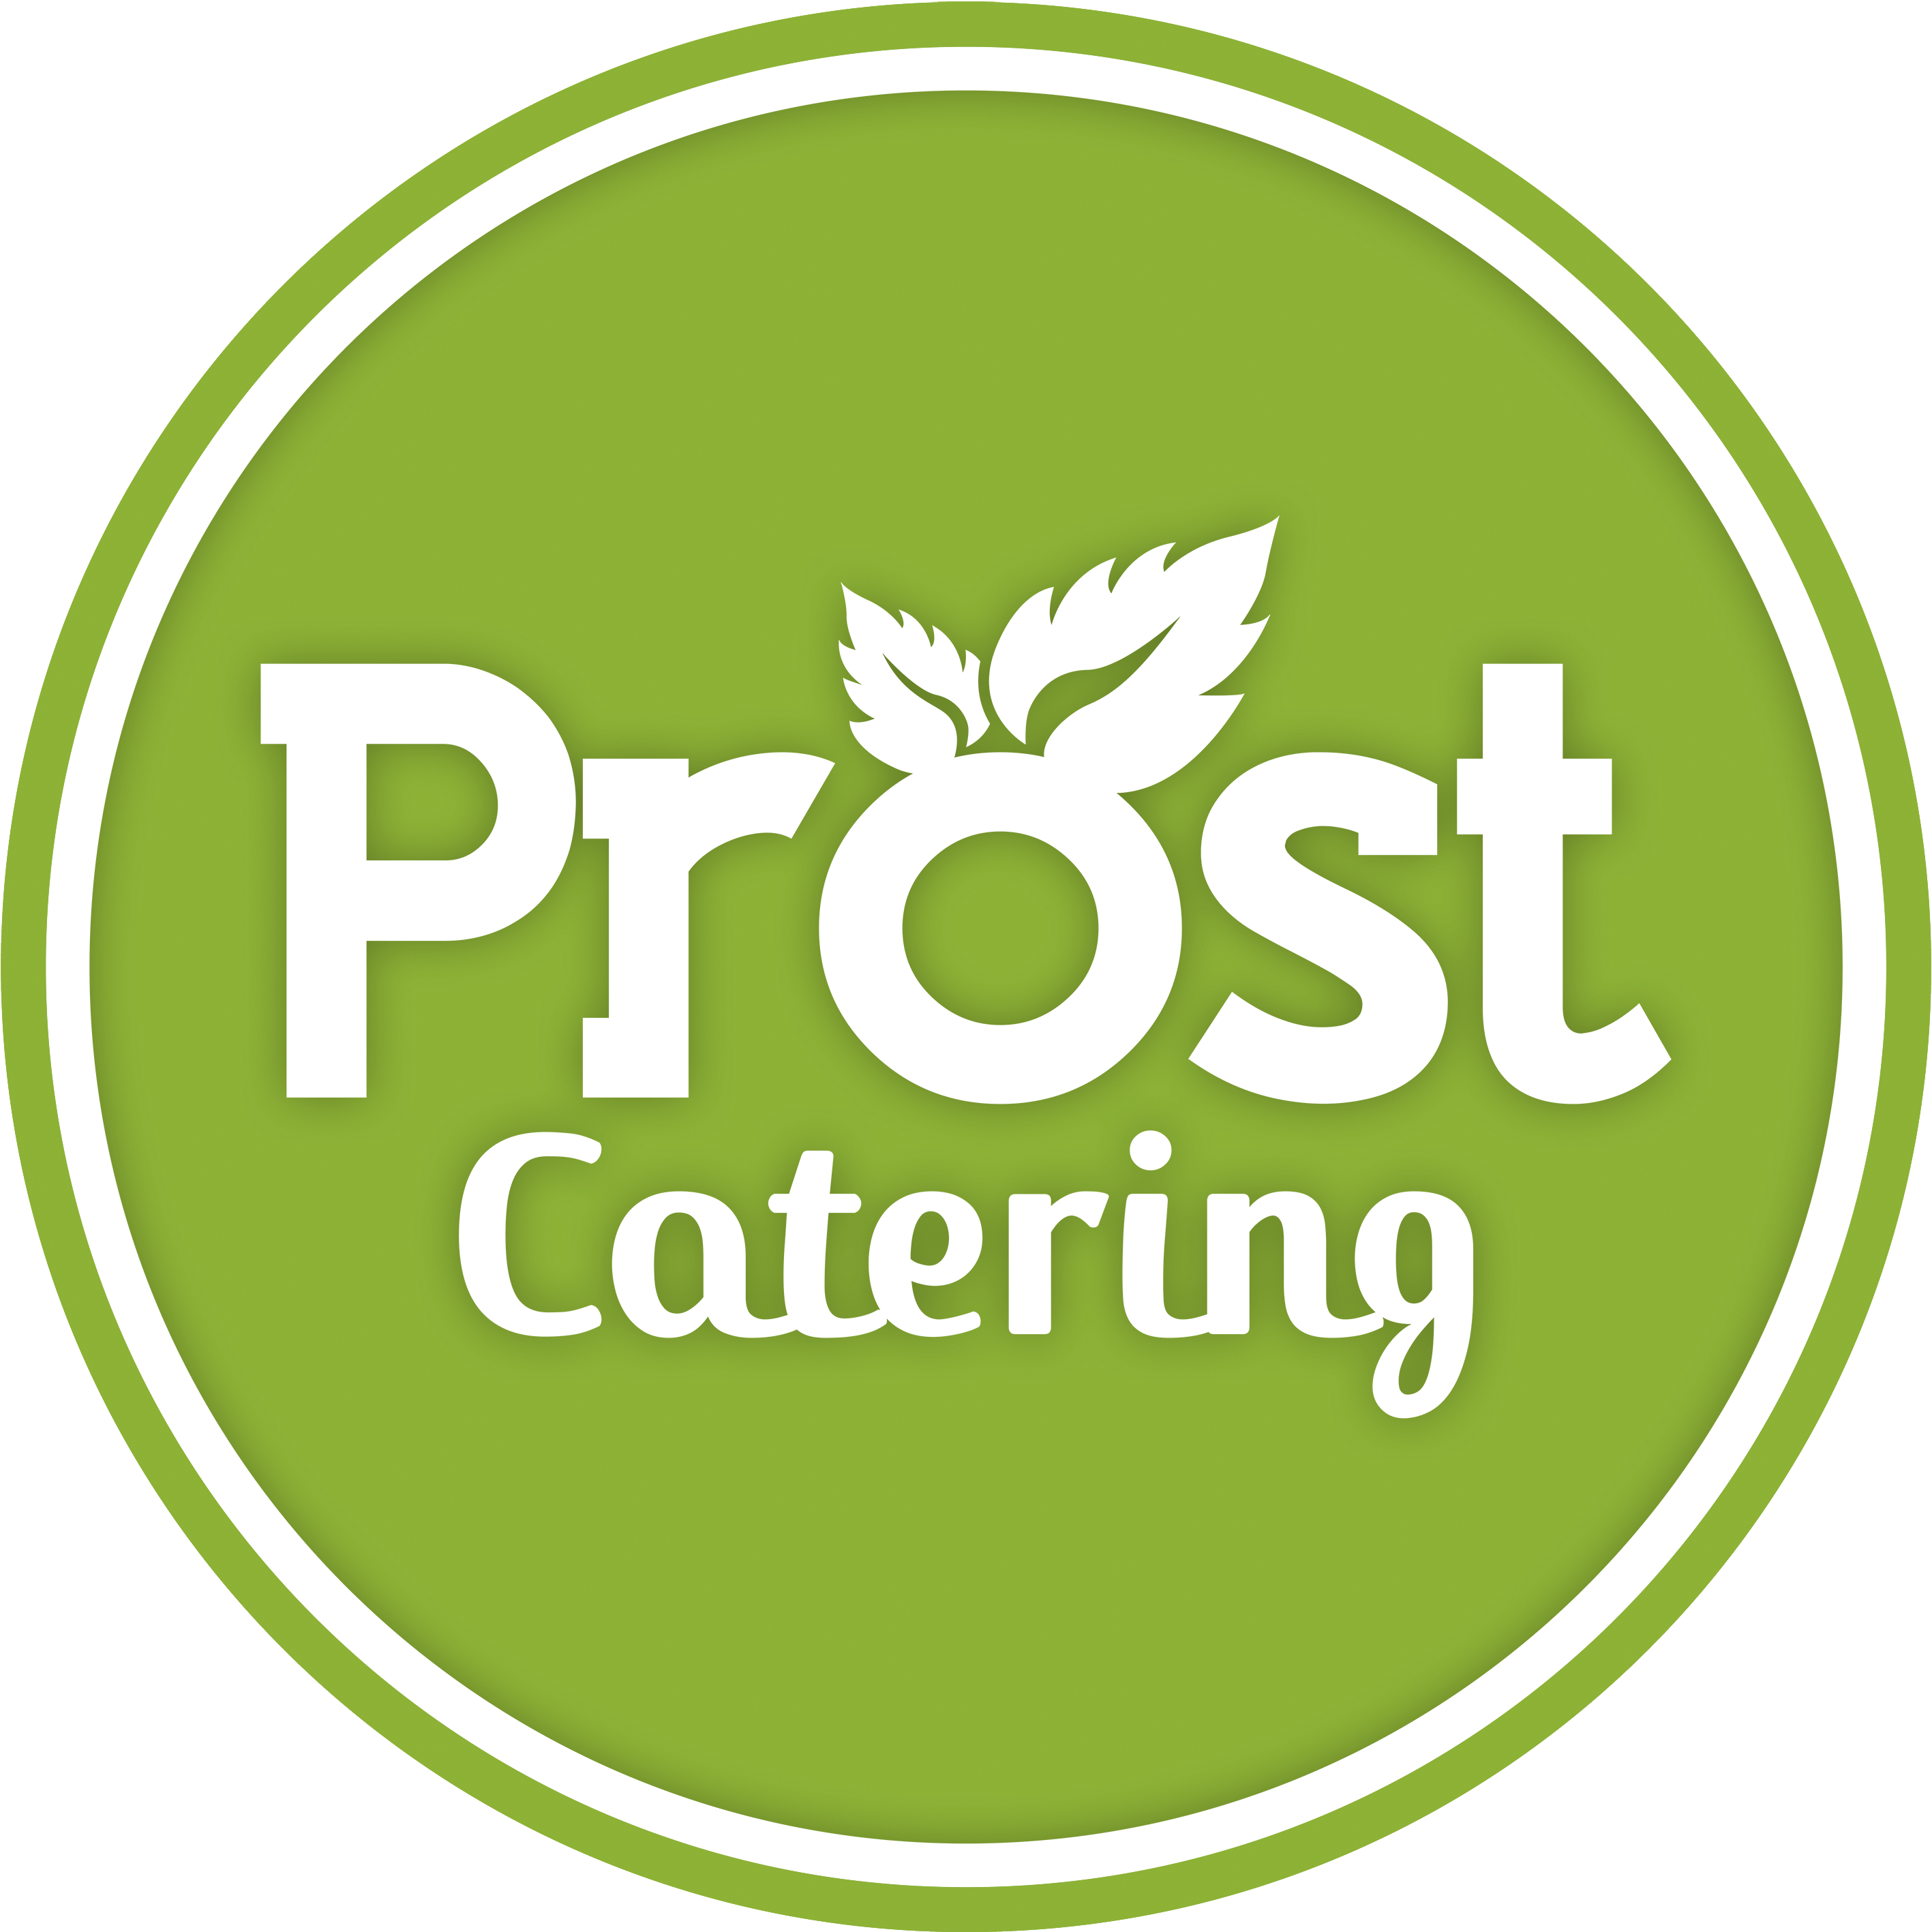 Prost Catering